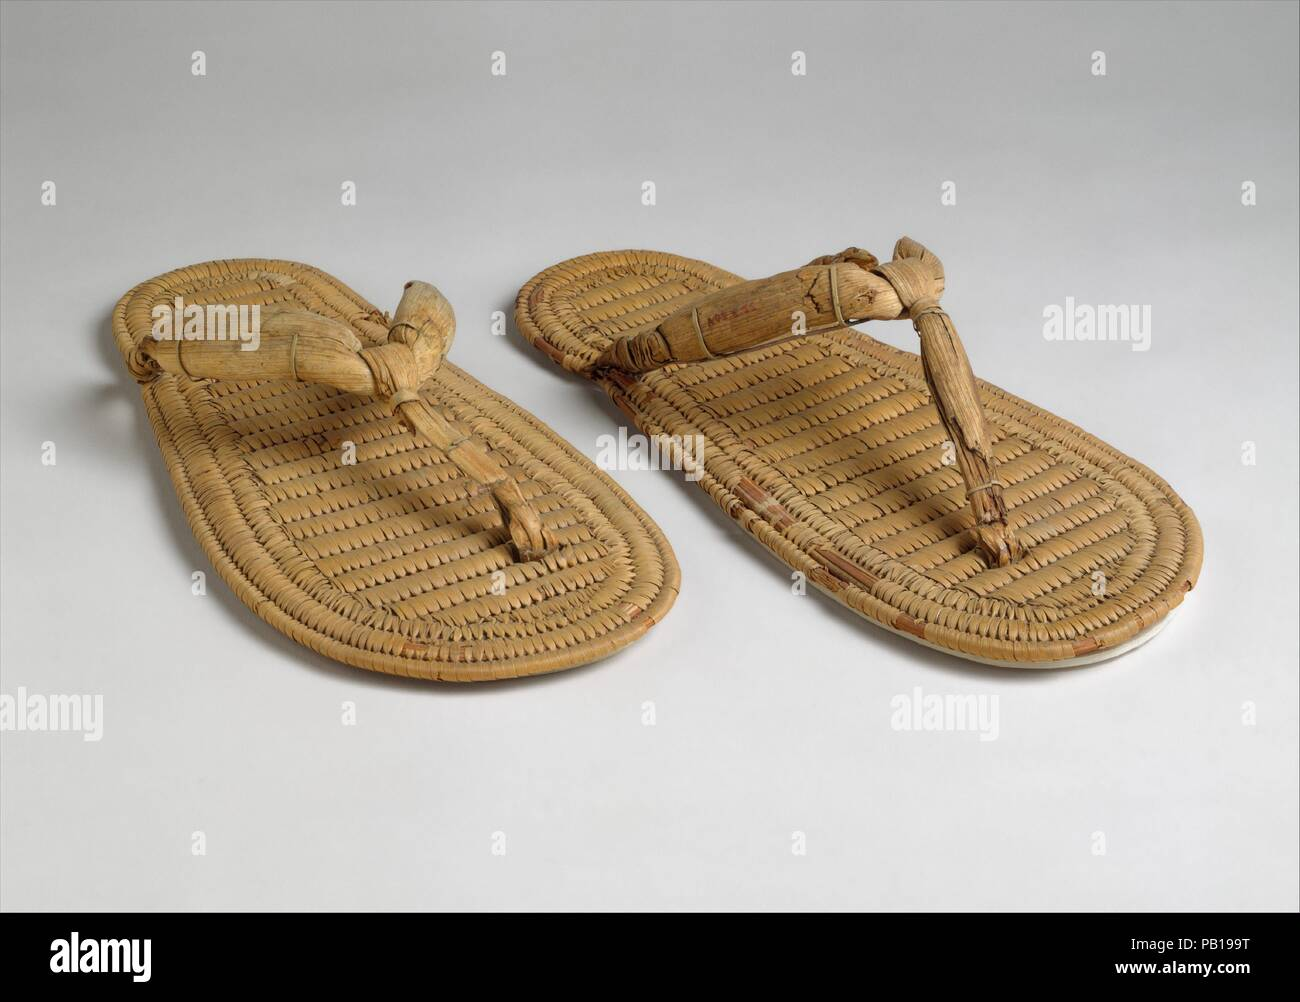 ae18e44b88022 Pair of Sandals. Dimensions  Right  L. 28.7 × W. 12.8 cm (11 5 16 × 5 1 16  in.)  Left  L. 28.3 × W. 12.6 cm (11 1 8 × 4 15 16 in.). Dynasty  Dynasty  17-18.